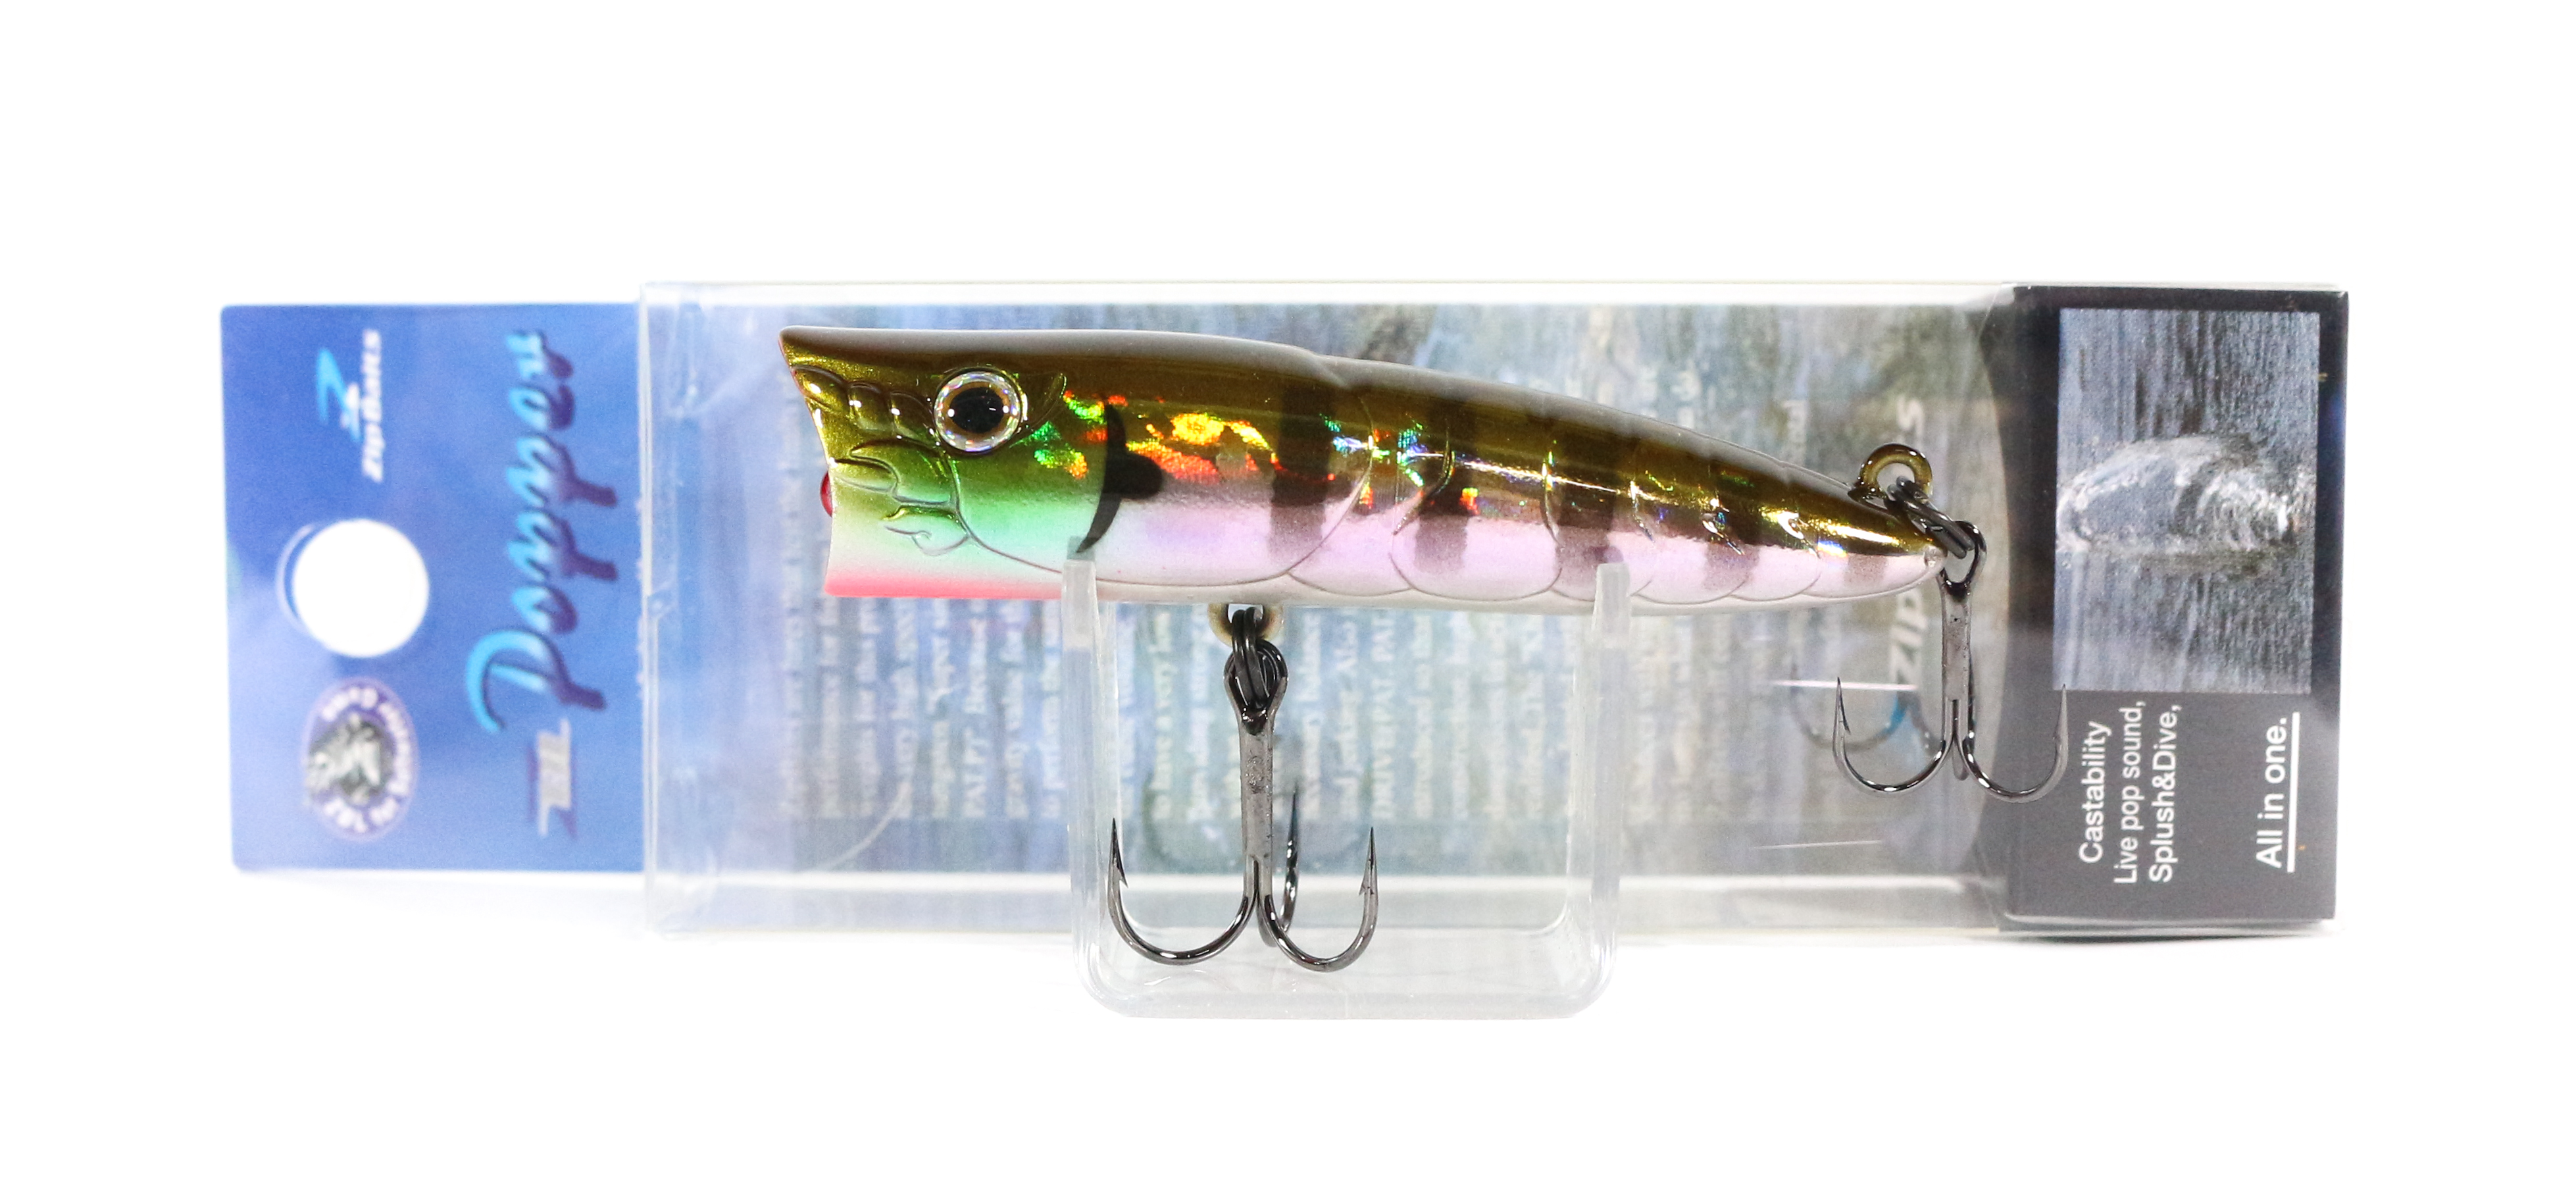 Sale Zipbaits ZBL Popper 68mm Floating Lure 509R (6053)